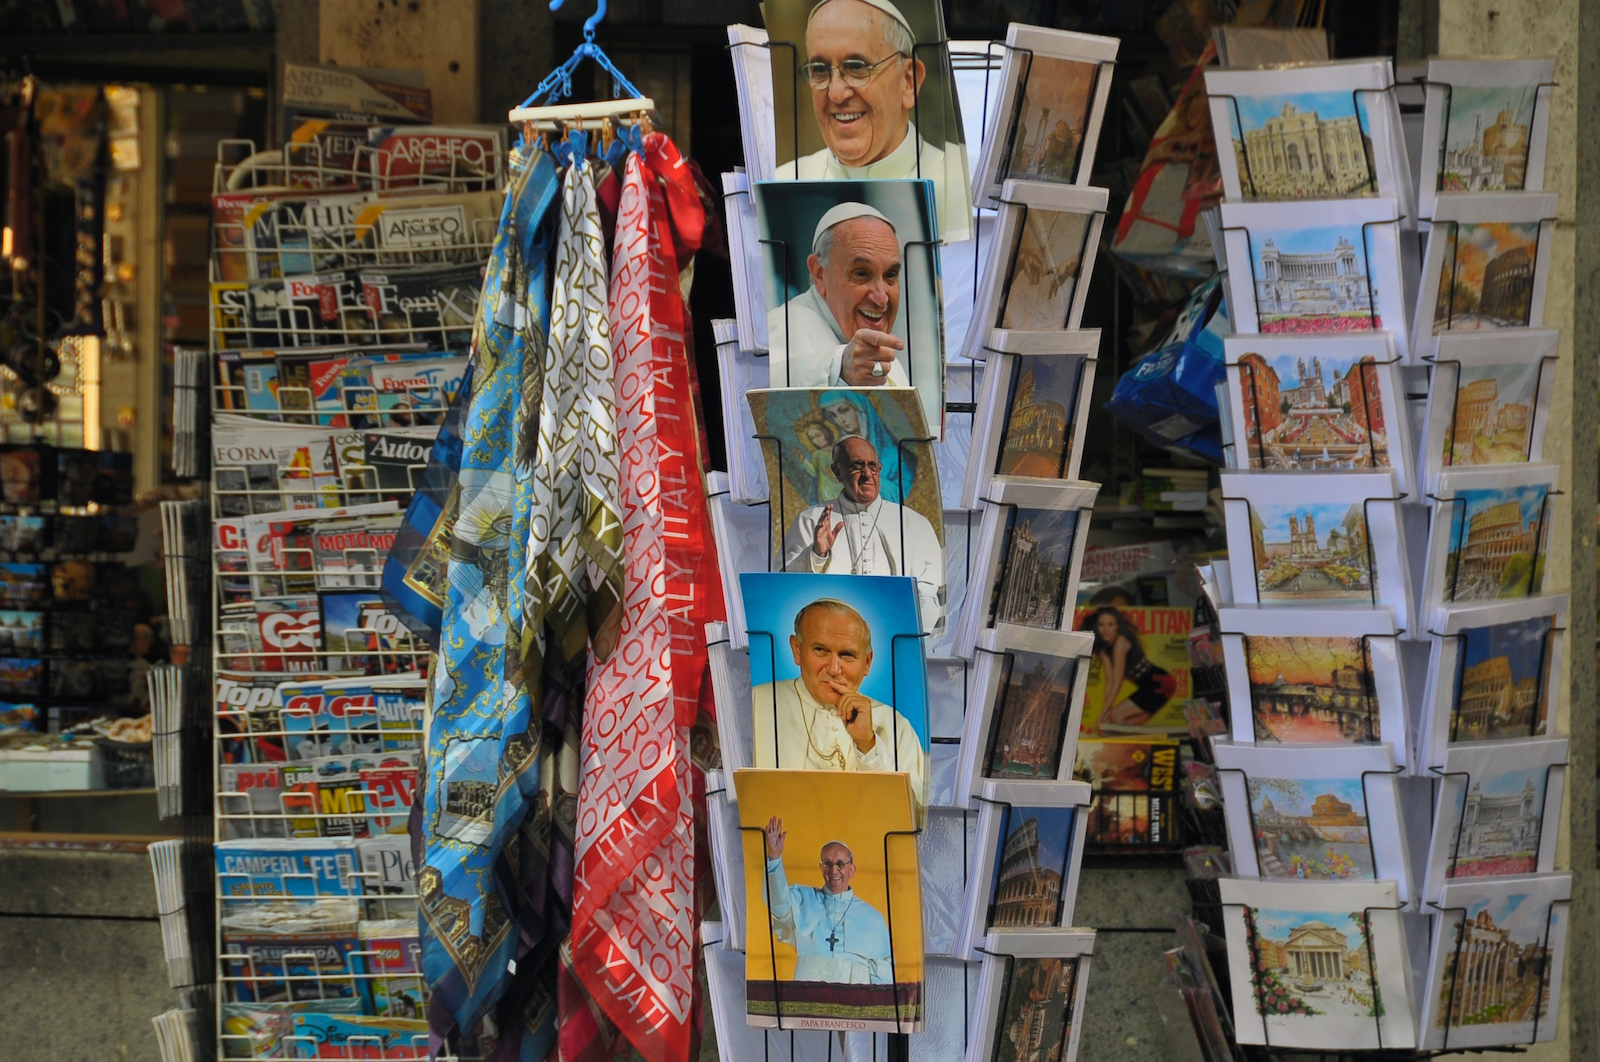 The popularity of Francis and the ease with which his image can be copied in the internet age has spawned a flood of papal trinkets, causing the Holy See to worry that they are losing control of his image. (Photo: faungg's photos/Flickr)